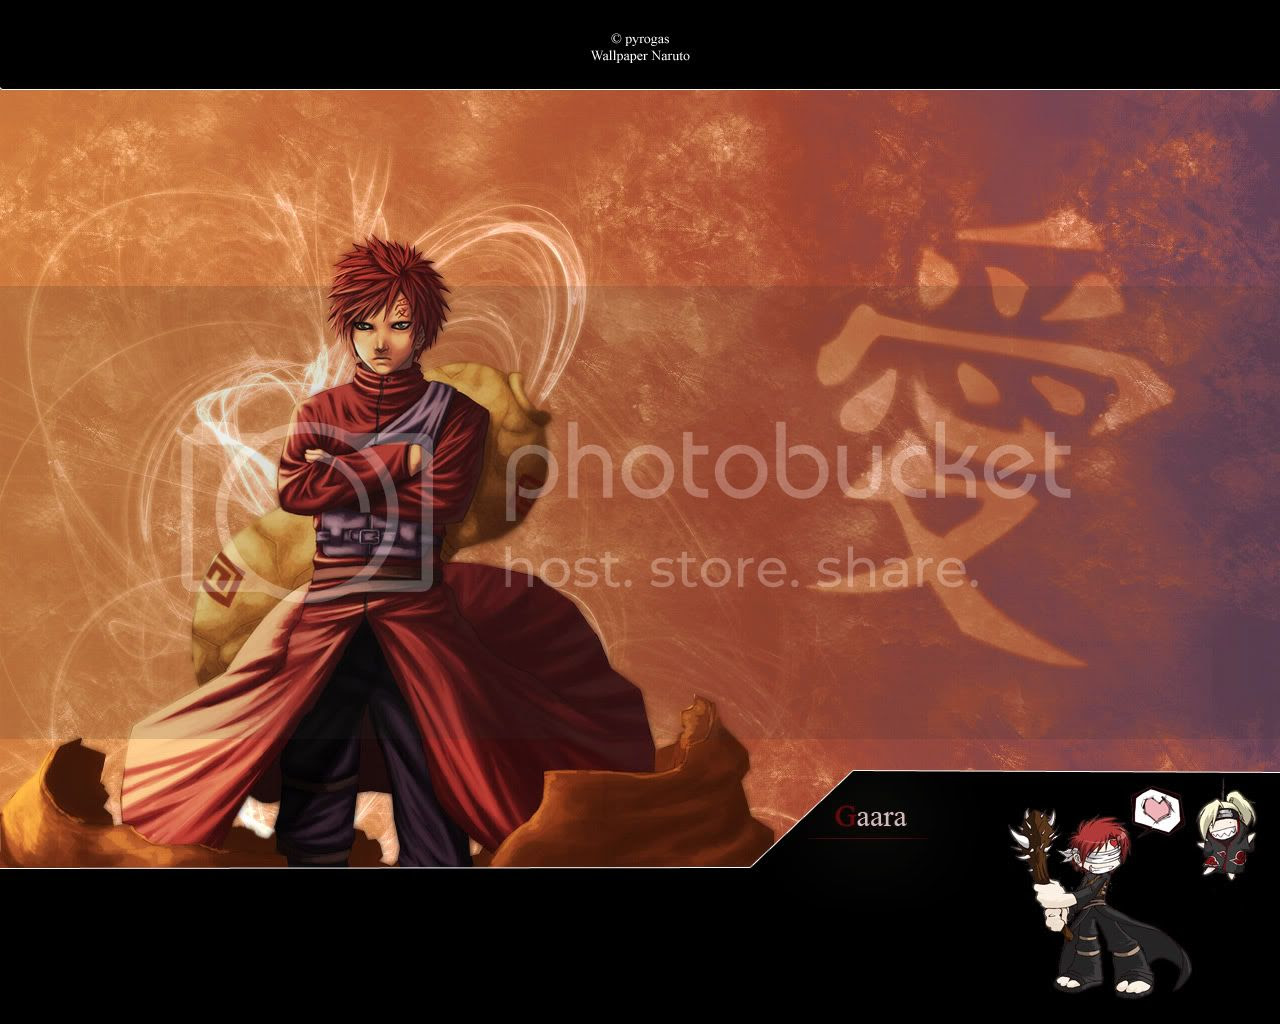 Gaara Anime Wallpapers and Pictures